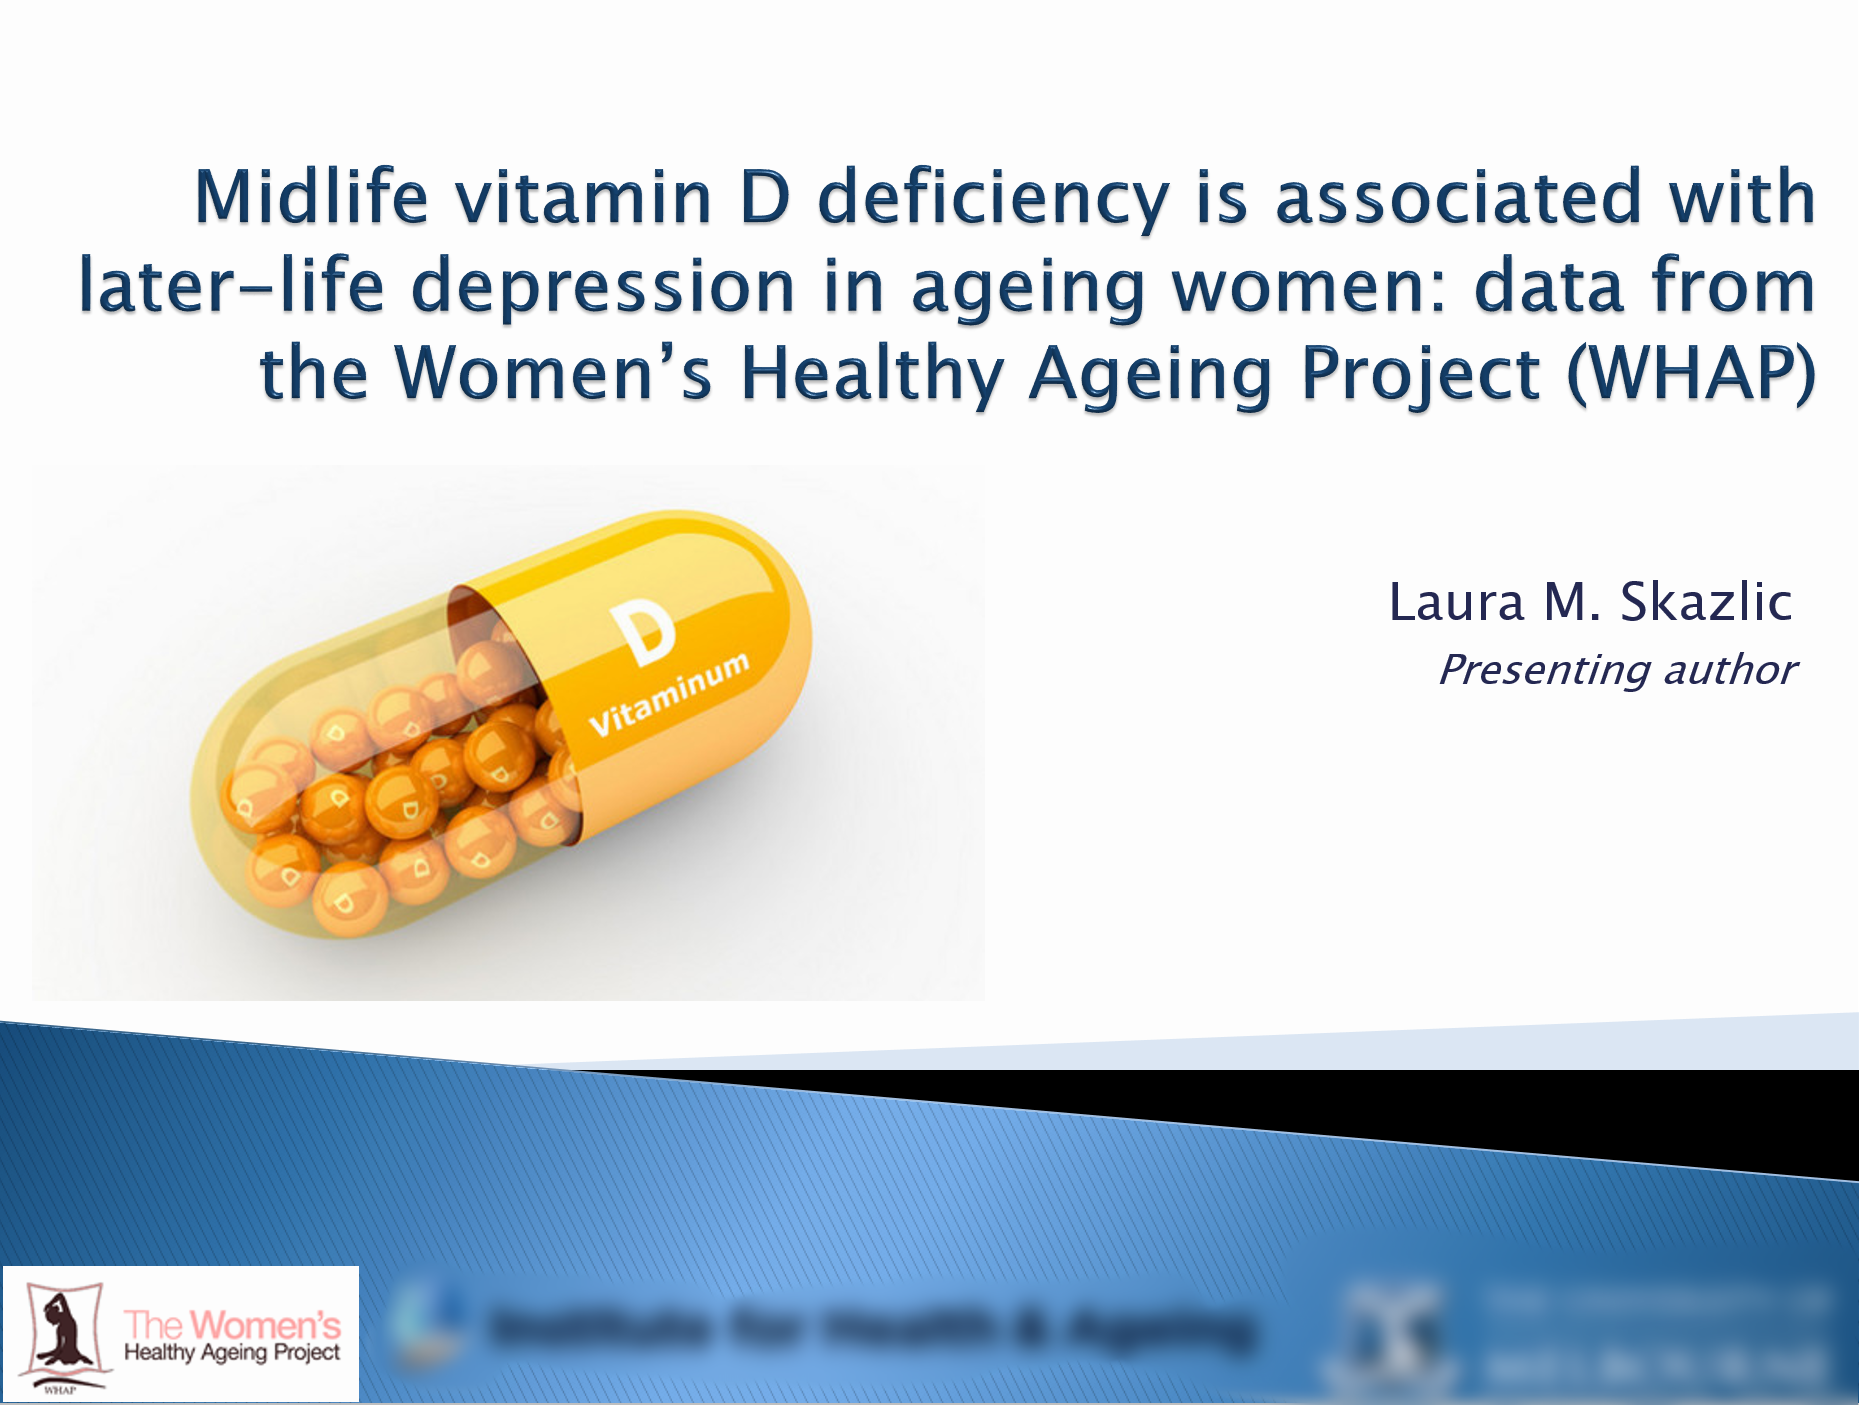 Midlife vitamin D deficiency is associated with later-life depression in ageing women - The objective of this research was to investigate the association between midlife vitamin D deficiency and a decade of depressive symptoms in ageing Australian women. The study found that lower levels of vitamin D were associated with greater depressive symptoms in Australian women aged over 55 years. Citation: Skazlic, L., et al. (2017). Midlife vitamin D deficiency is associated with later-life depression in ageing women. Paper presented at the 23rd World Congress of Neurology, Kyoto, Japan, 16-21 September.